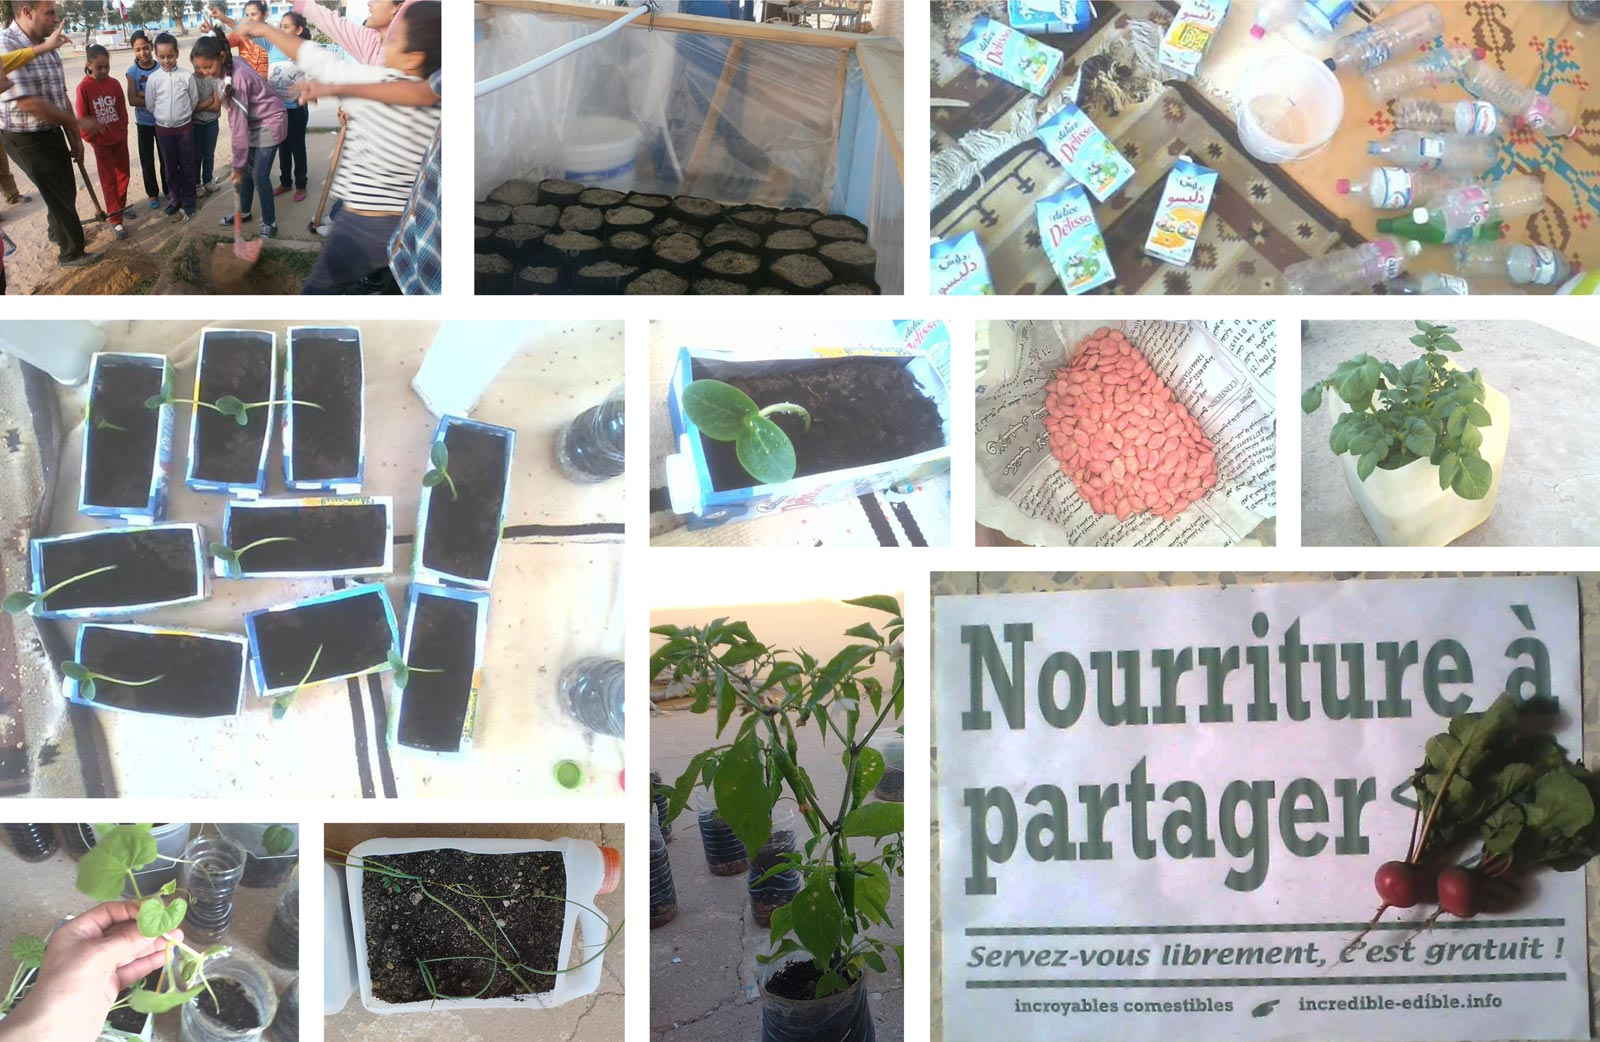 c637_incredible_edible_todmorden_tunisie_gafsa_agriculture_urbaine_incroyables_comestibles_w1600